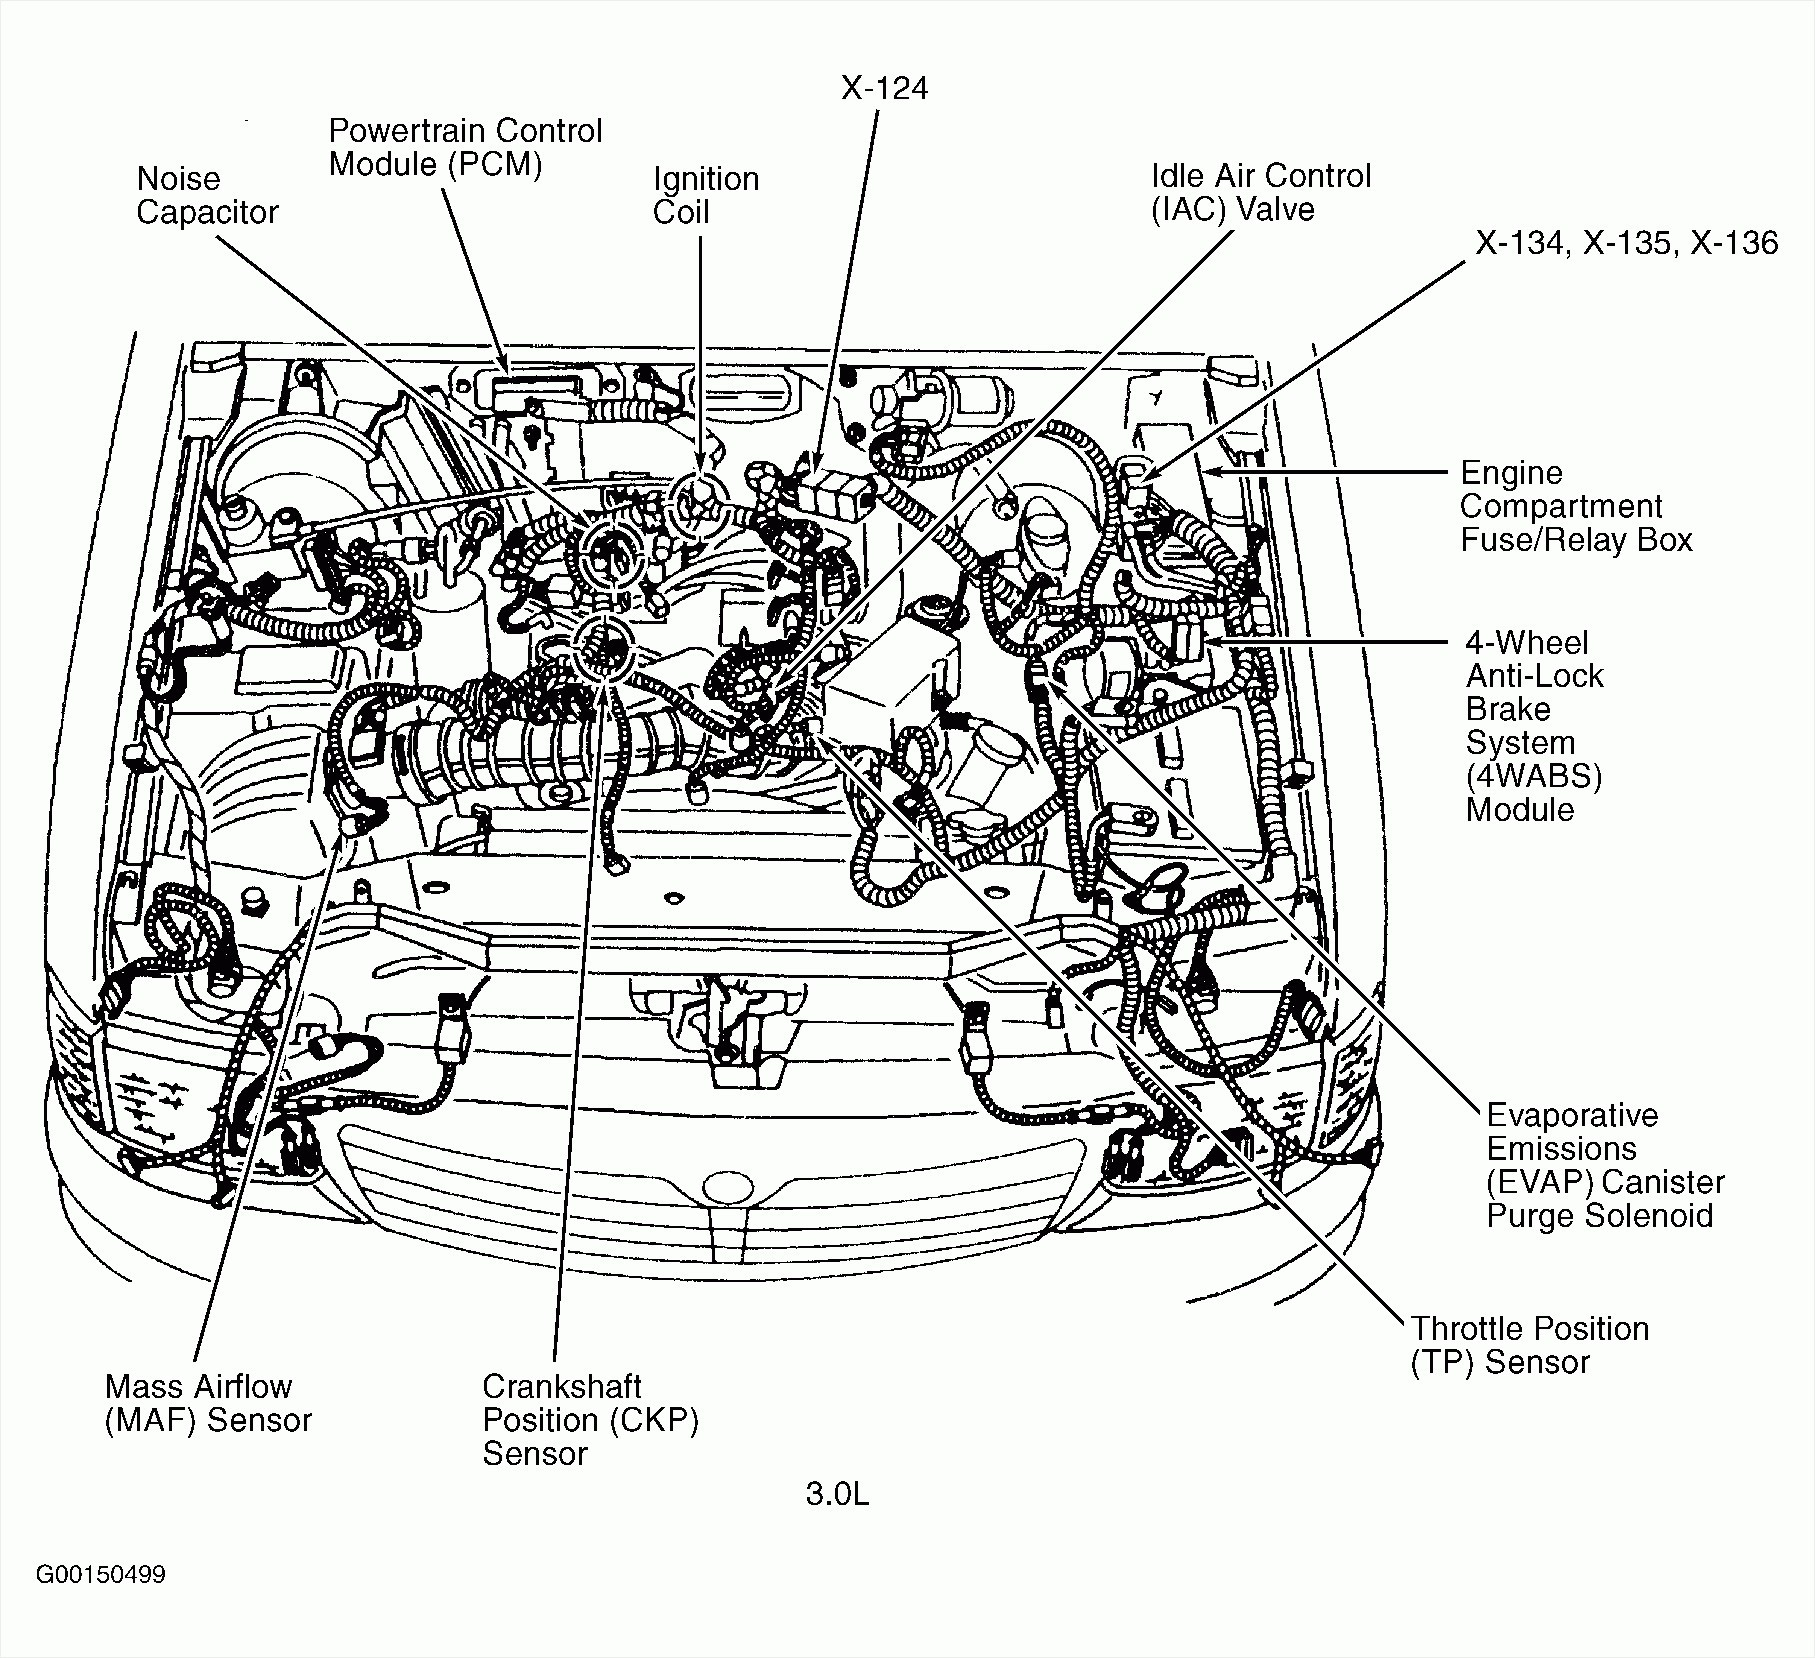 hight resolution of ford 3 8l engine diagram wiring diagram todays rh 16 16 12 1813weddingbarn com 2001 mustang engine diagram 1996 ford mustang 3 8 engine diagram